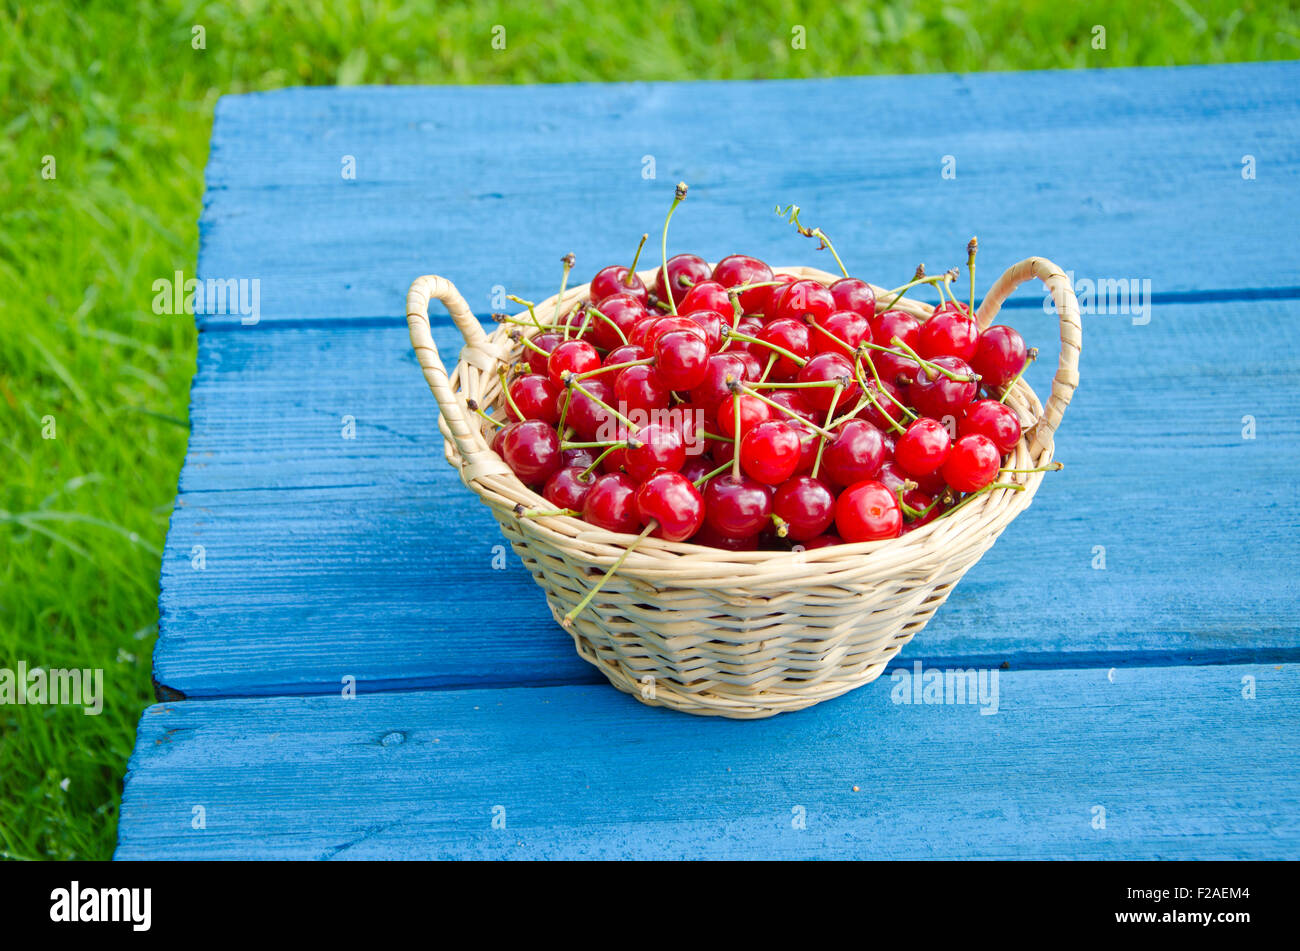 Ripe sweet cherries in wicker basket on blue table - Stock Image